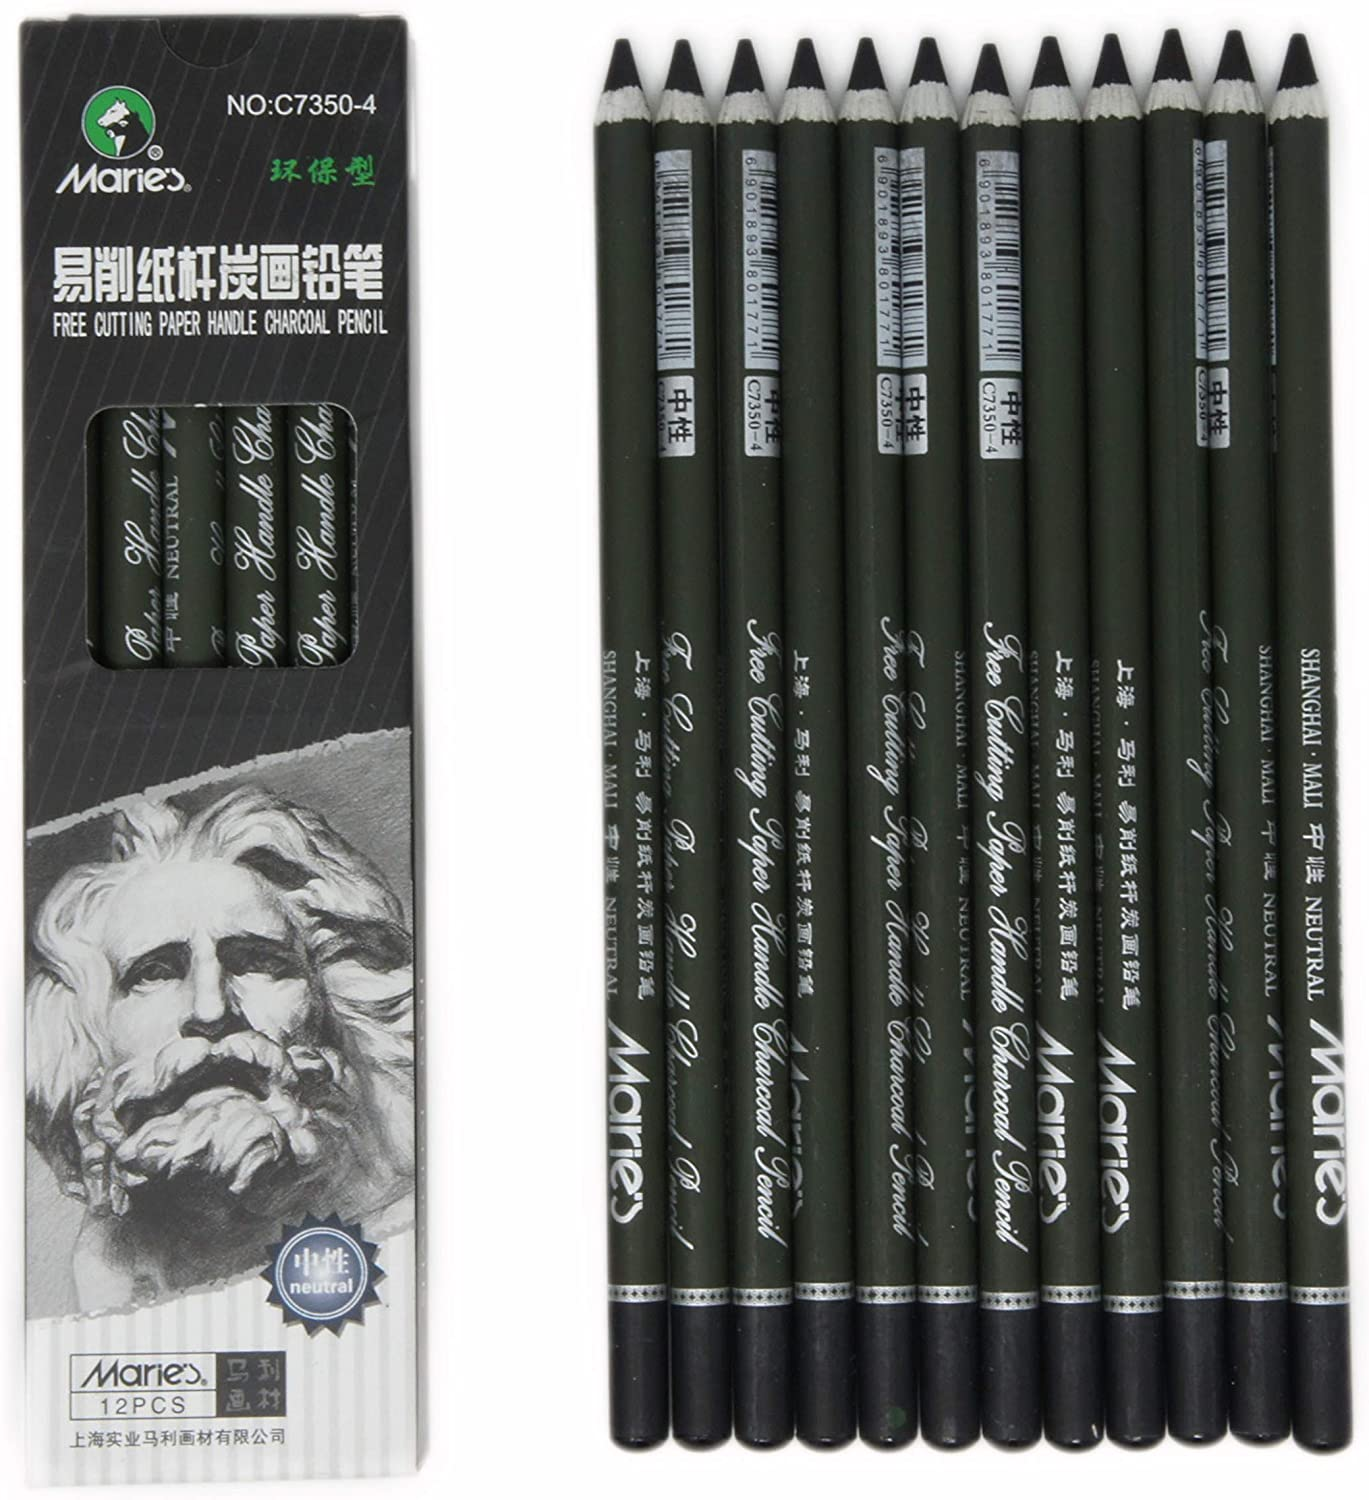 Black Free Cutting Paper Handle Charcoal Pencils